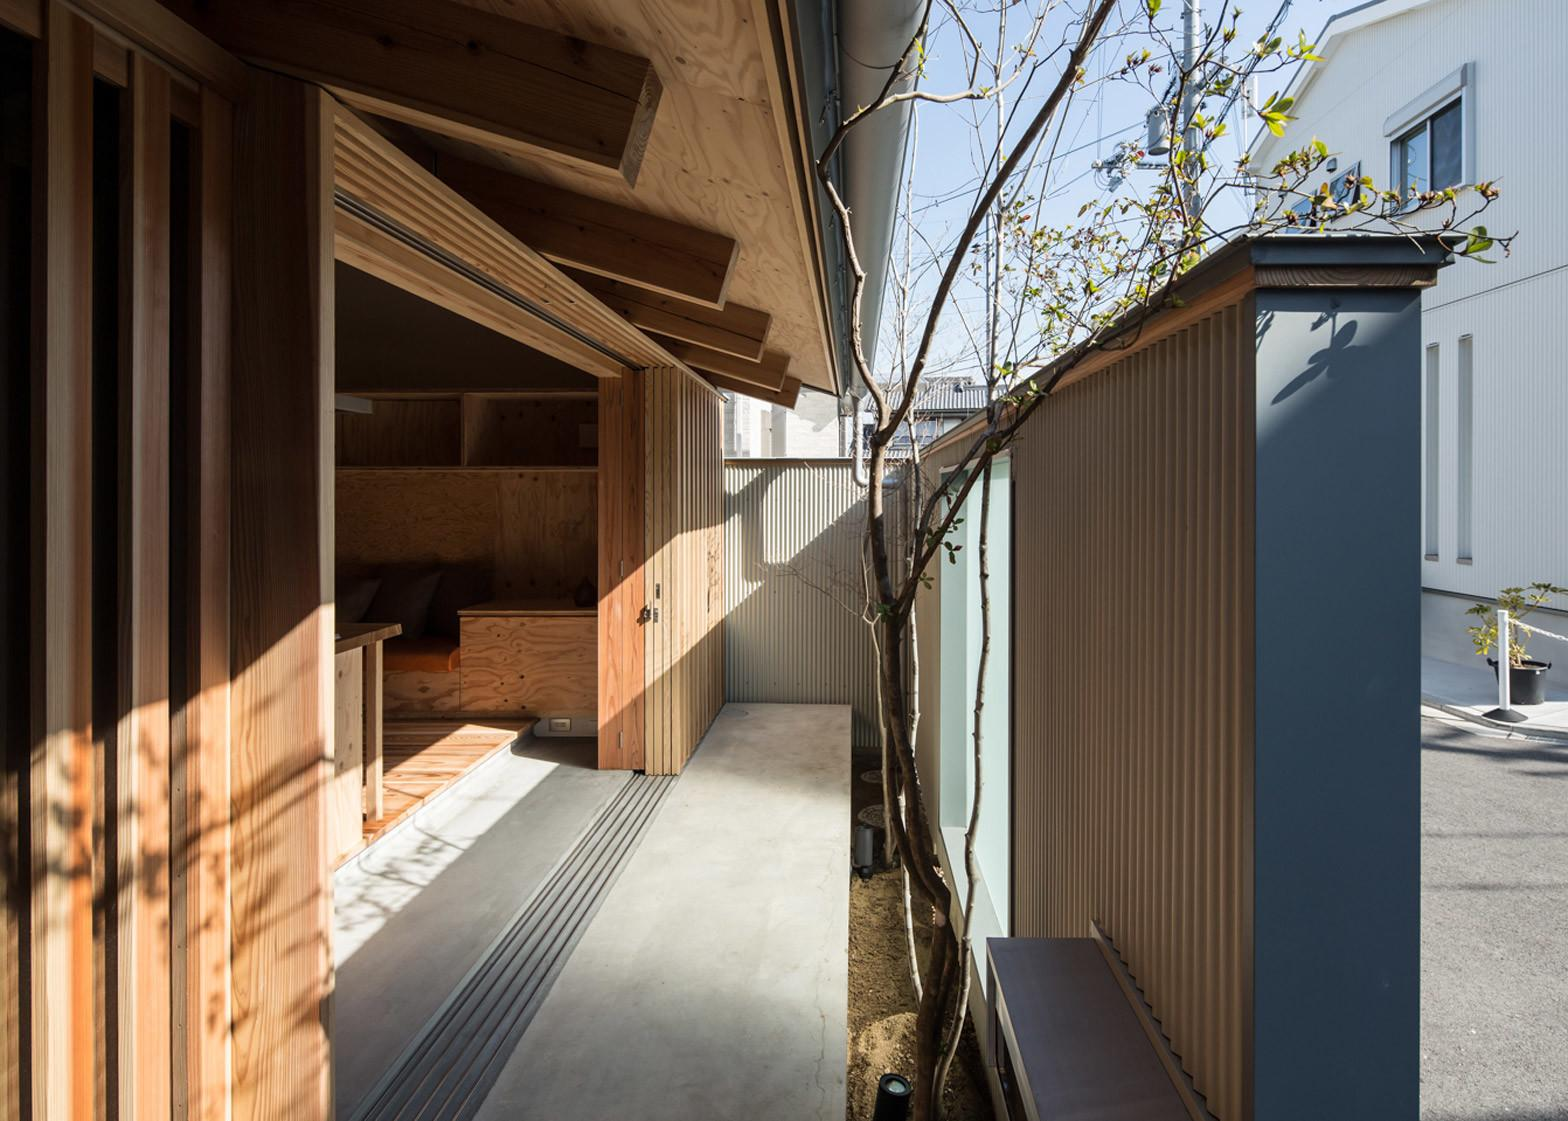 Plywood Interiors Provide Compact Japanese House Storage